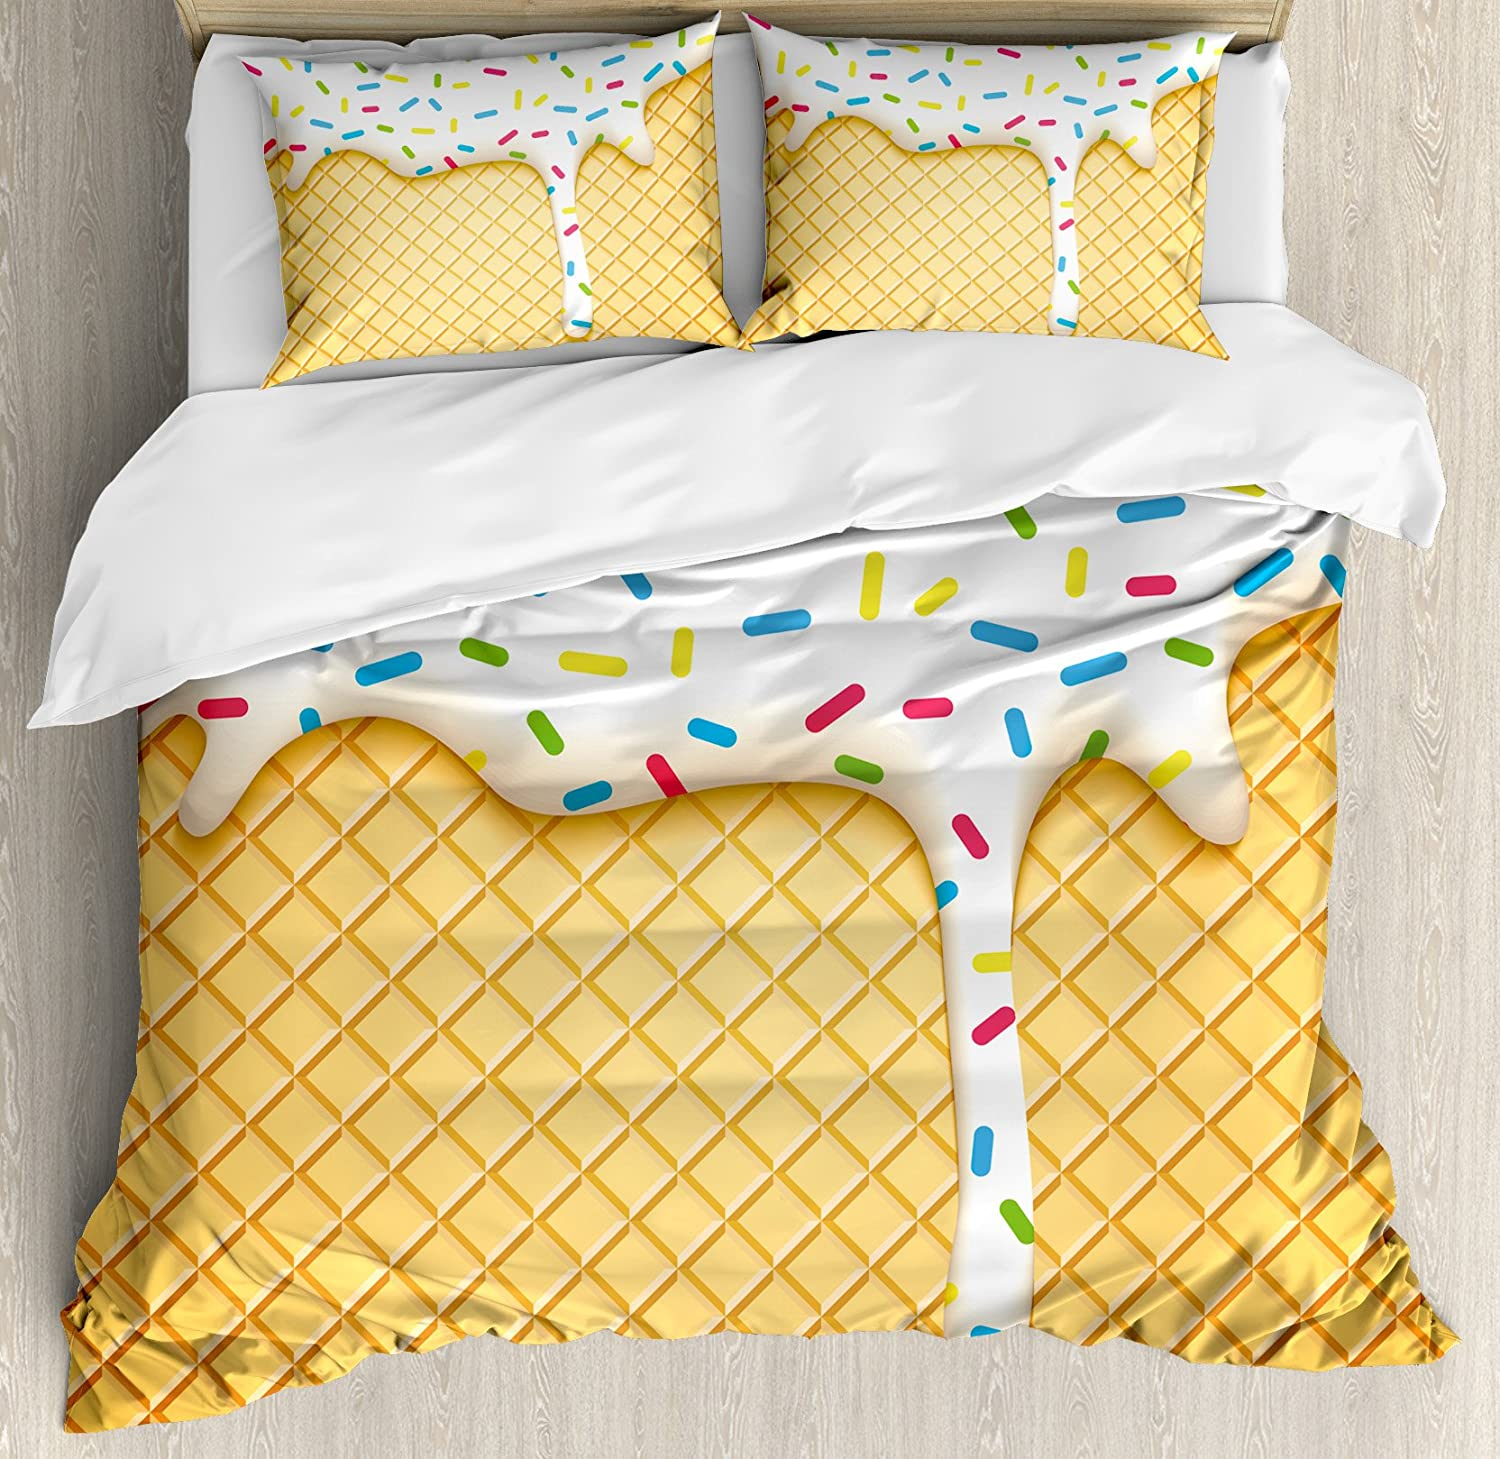 Ambesonne Food Duvet Cover Set, Cartoon Like Image of and Melting Ice Cream Cones Colored Sprinkles Print, Decorative 3 Piece Bedding Set with 2 Pillow Shams, Queen Size, Yellow White